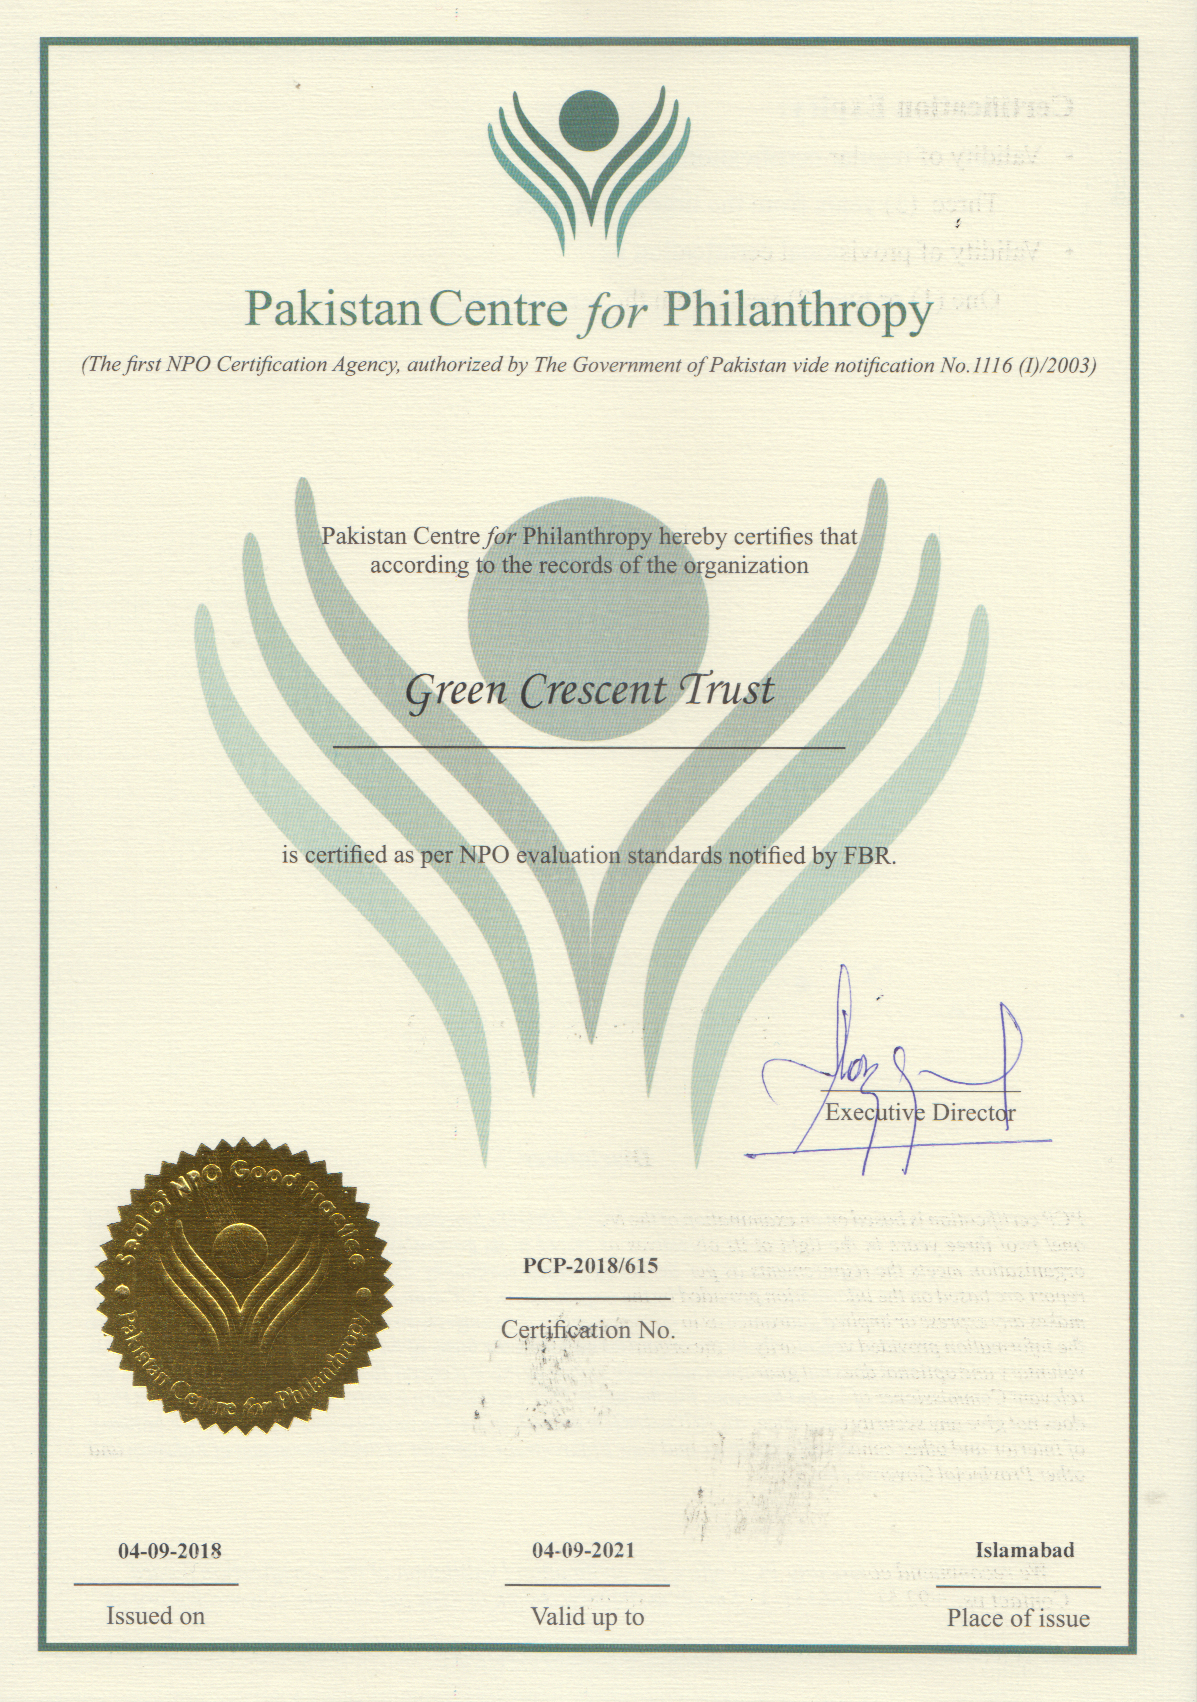 Donation for Children's Education in Pakistan